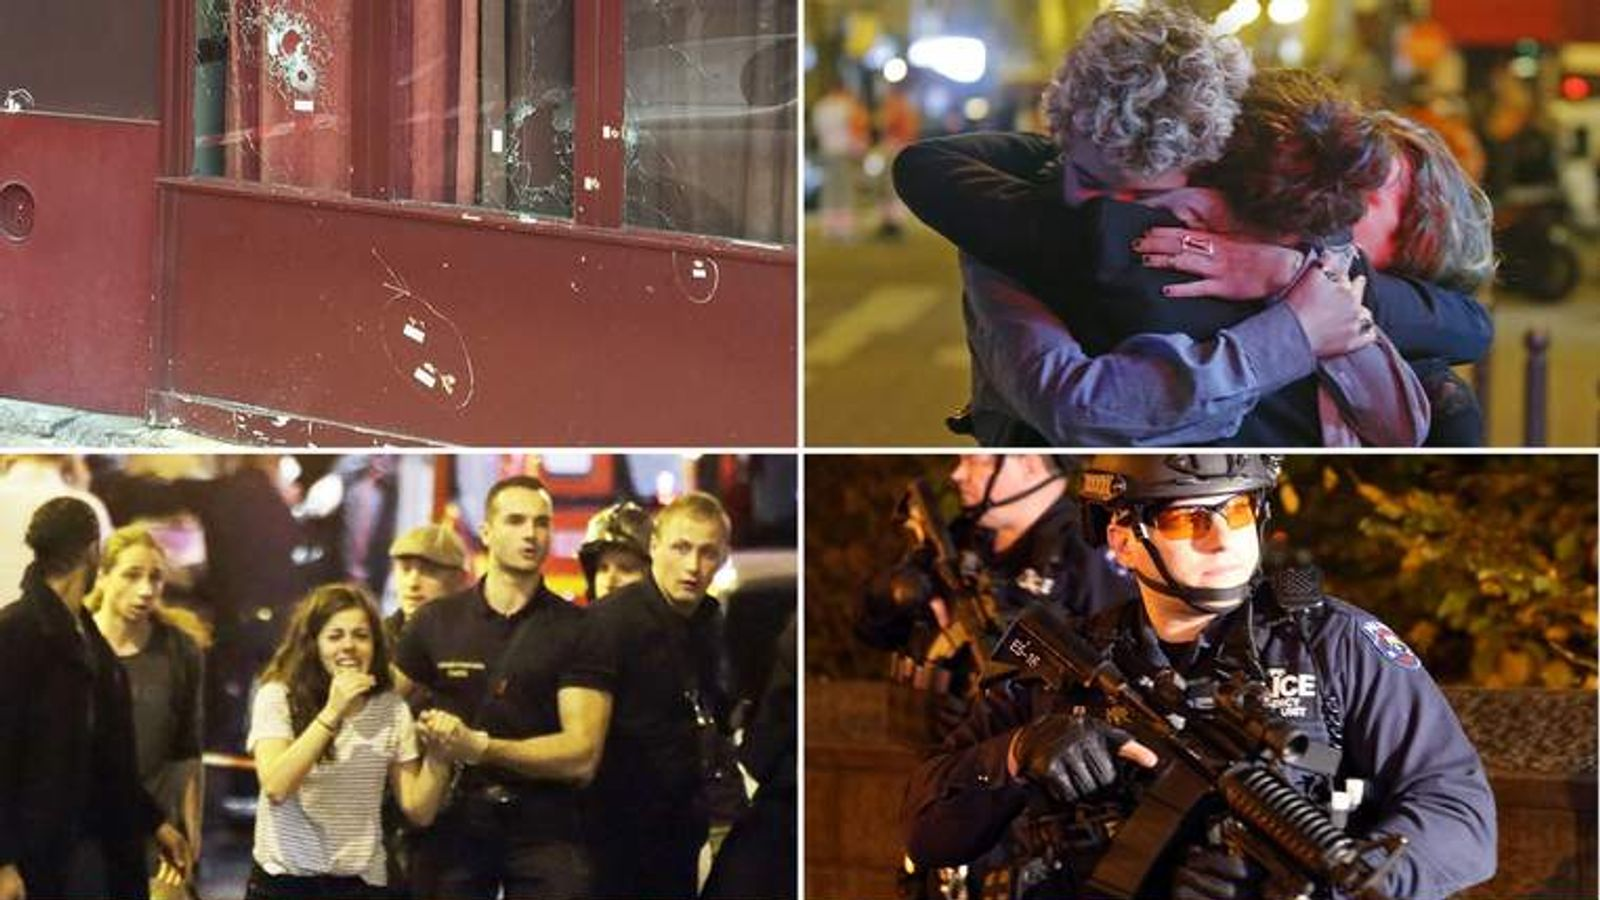 Paris is reeling after a series of attacks left more than 100 dead.